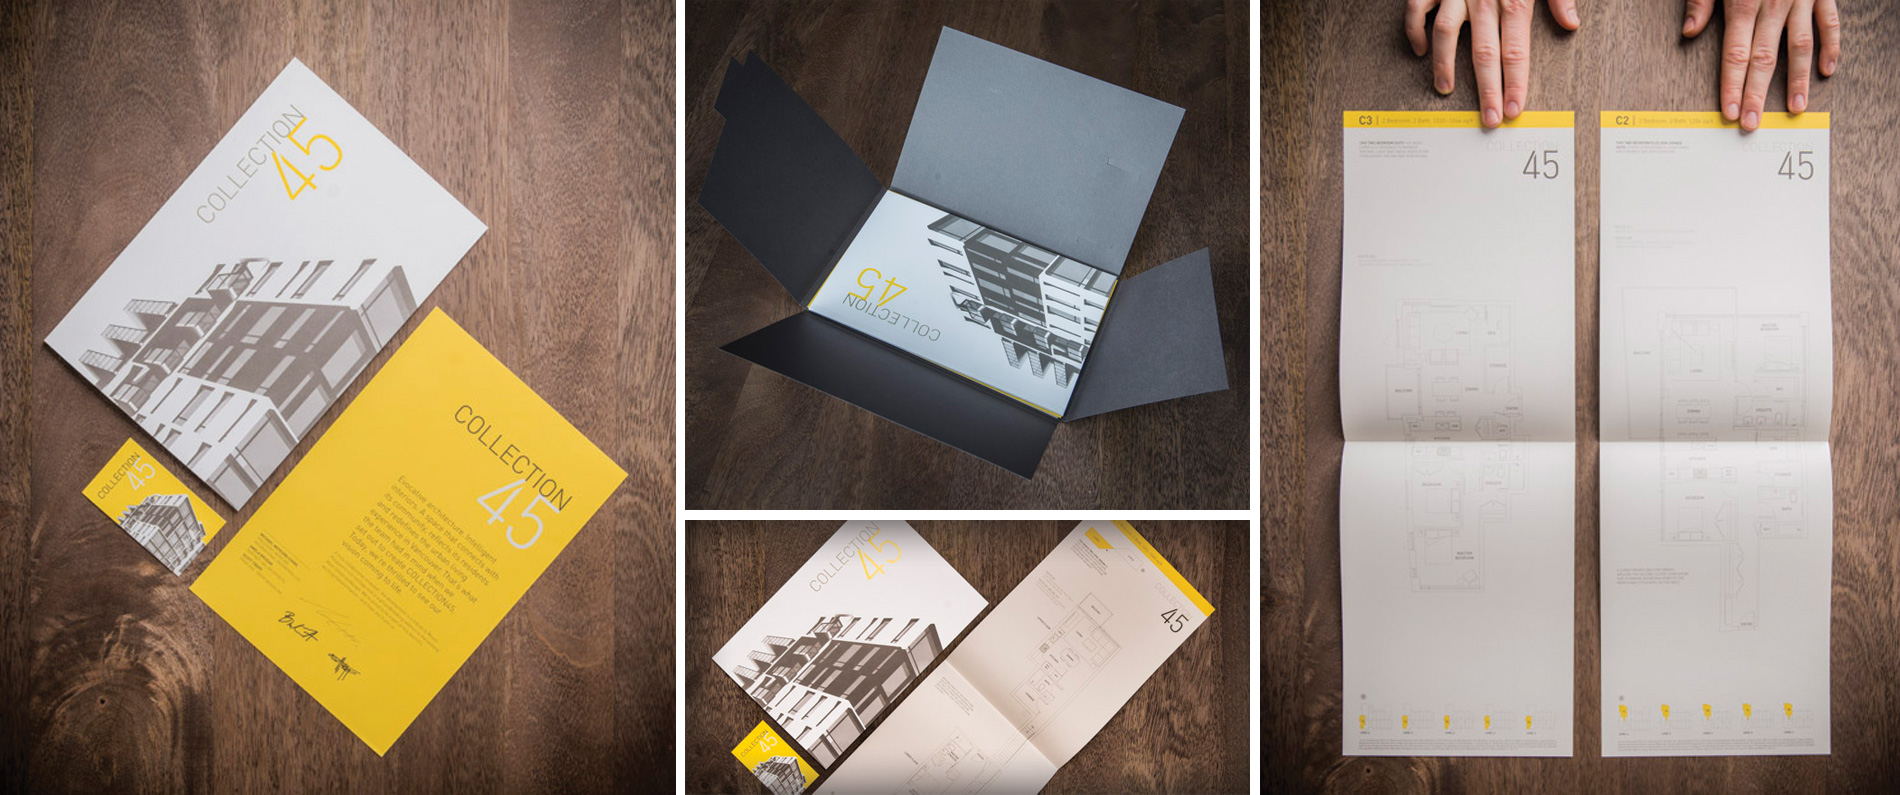 Printed brochure for Collection 45